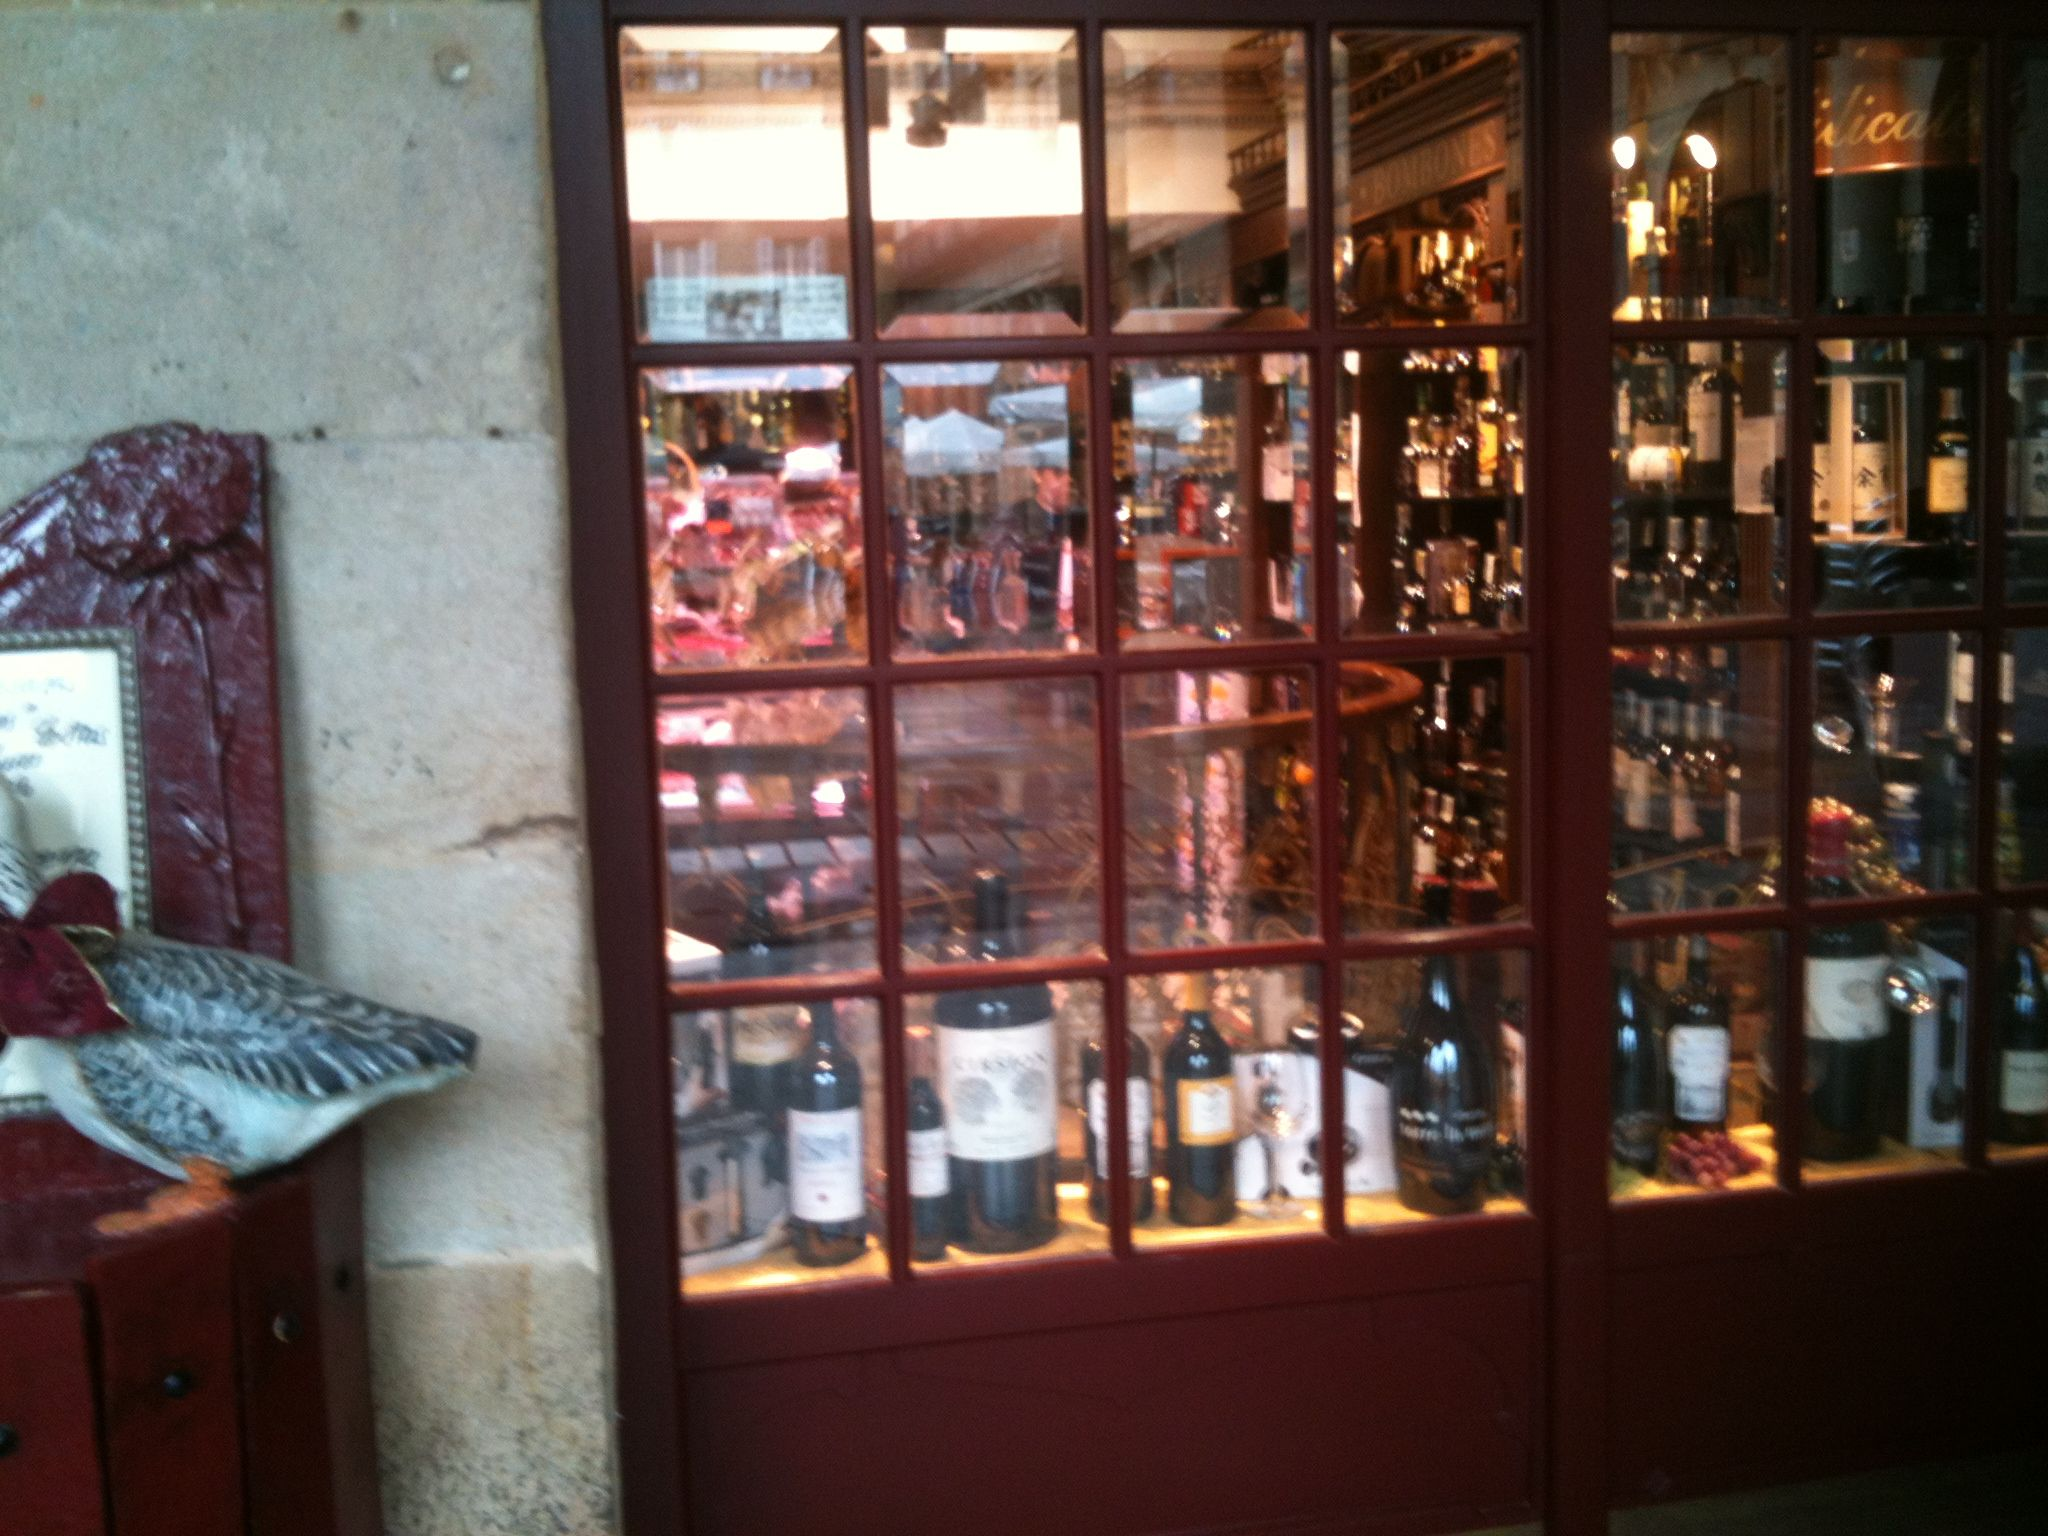 Typical delicatessen shop of traditional products, Bilbao Region, Basque Country.